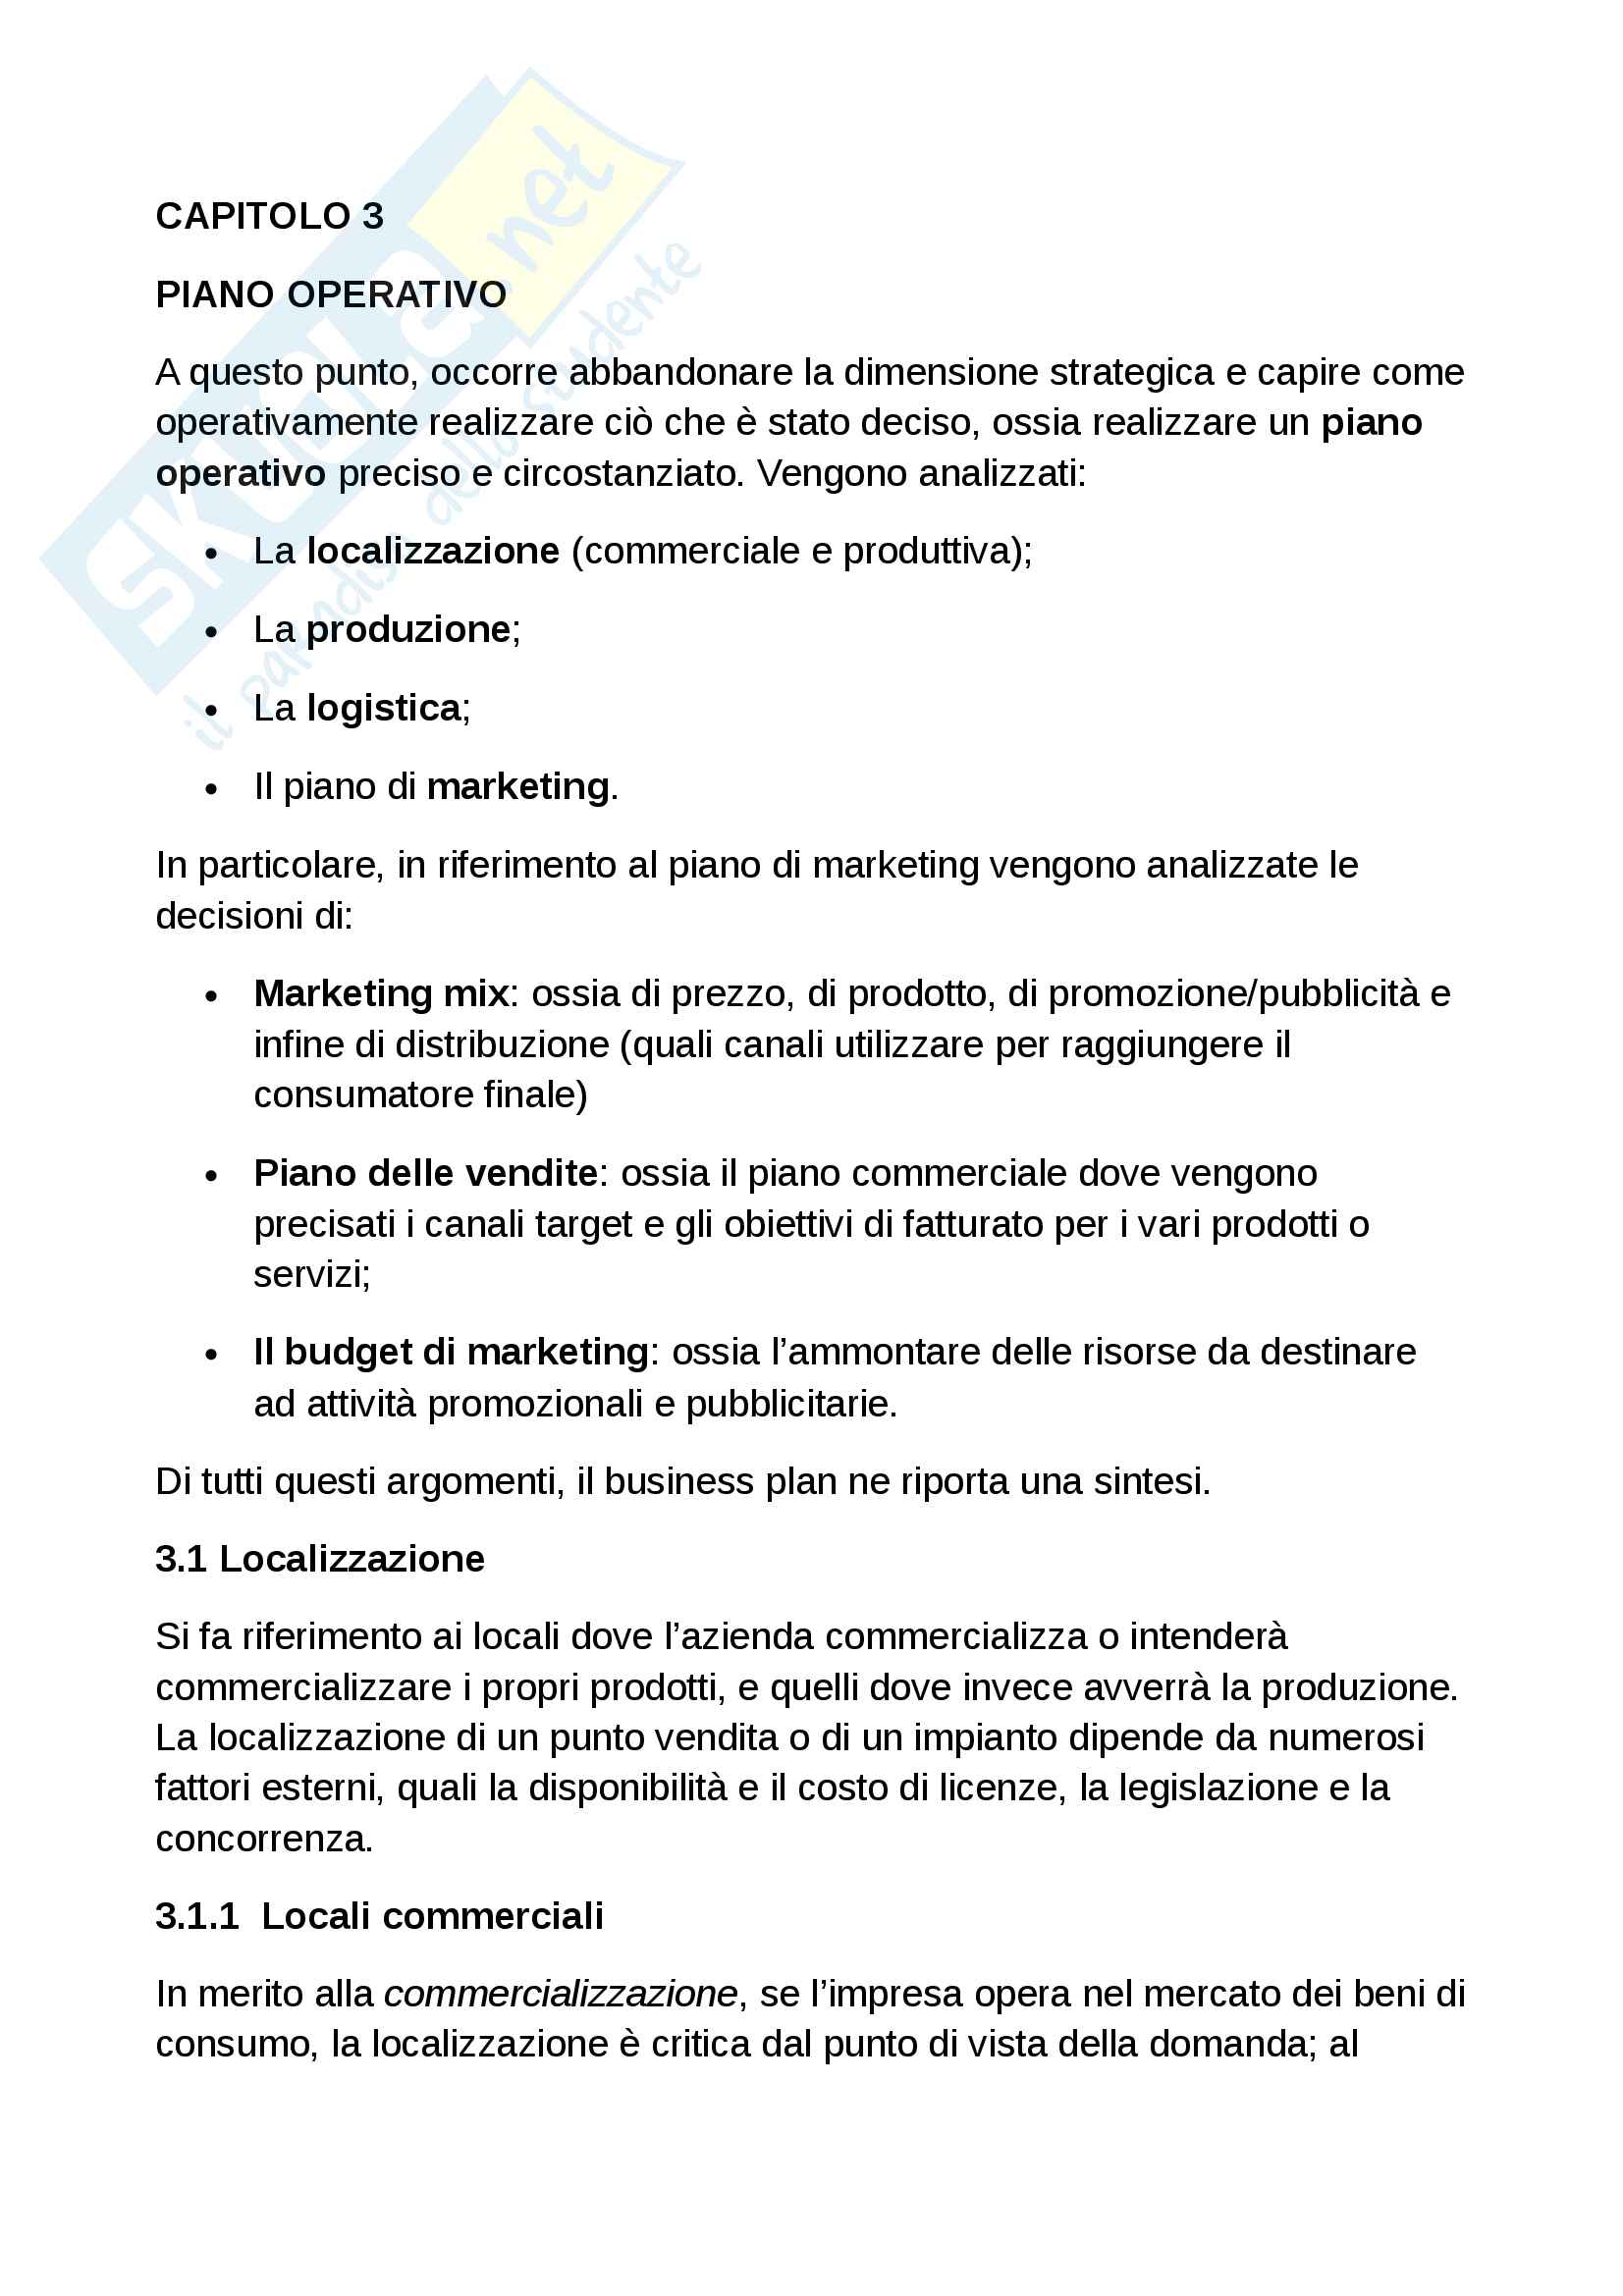 Piano operativo del business plan